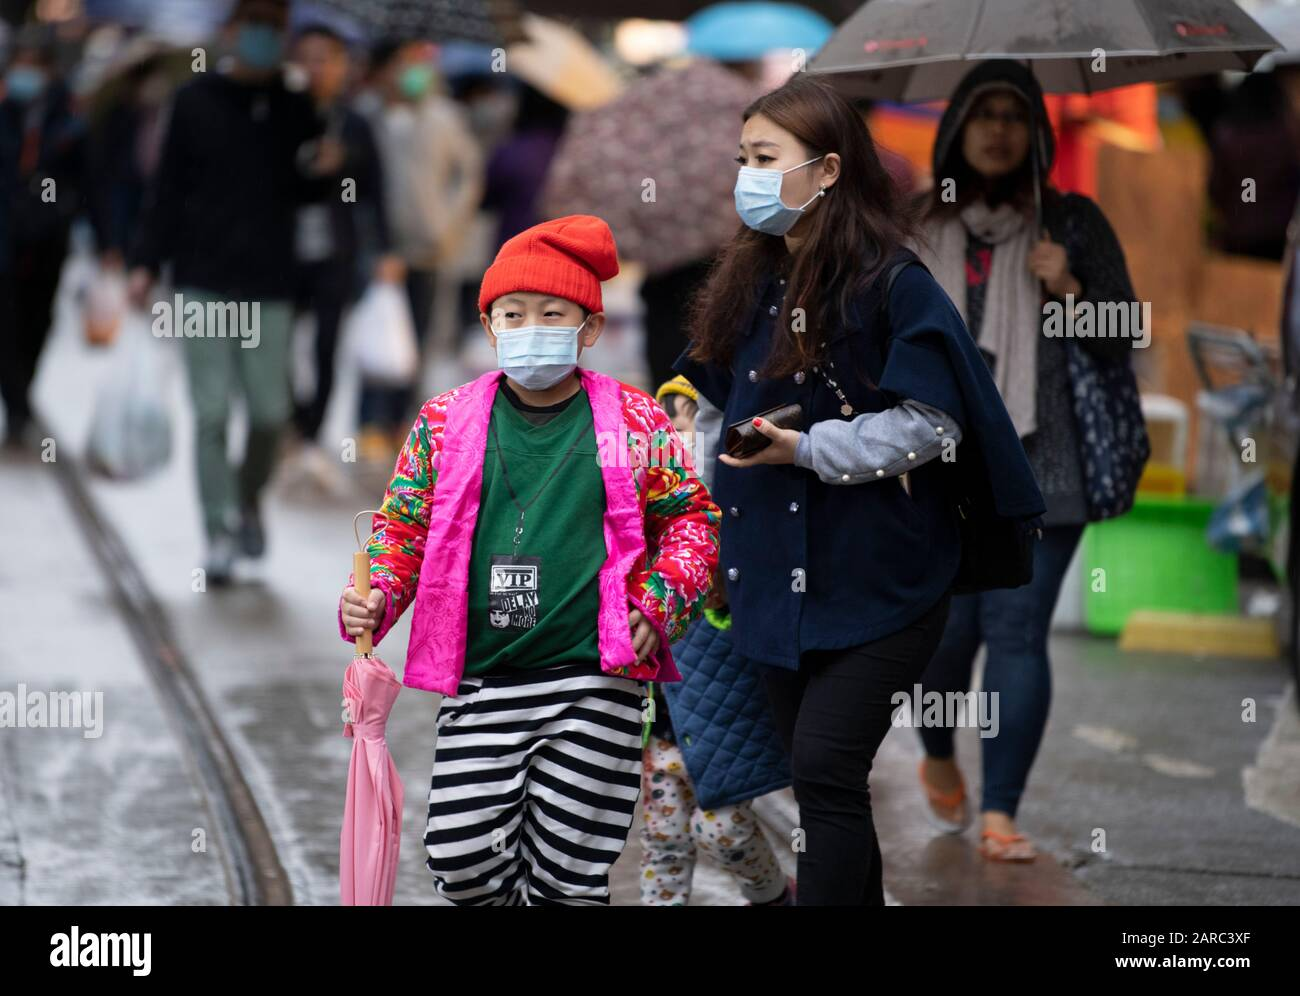 Hong Kong, China. 27th Jan, 2020. North Point Markets are open during Lunar New Year with many taking advise to wear surgical masks against the novel CoronaVirus from China. Others ignore warnings despite on of the local cases involving a North Point man.Shoppers at the market wear masks. Alamy Stock Image/Jayne Russell Credit: Jayne Russell/Alamy Live News Stock Photo